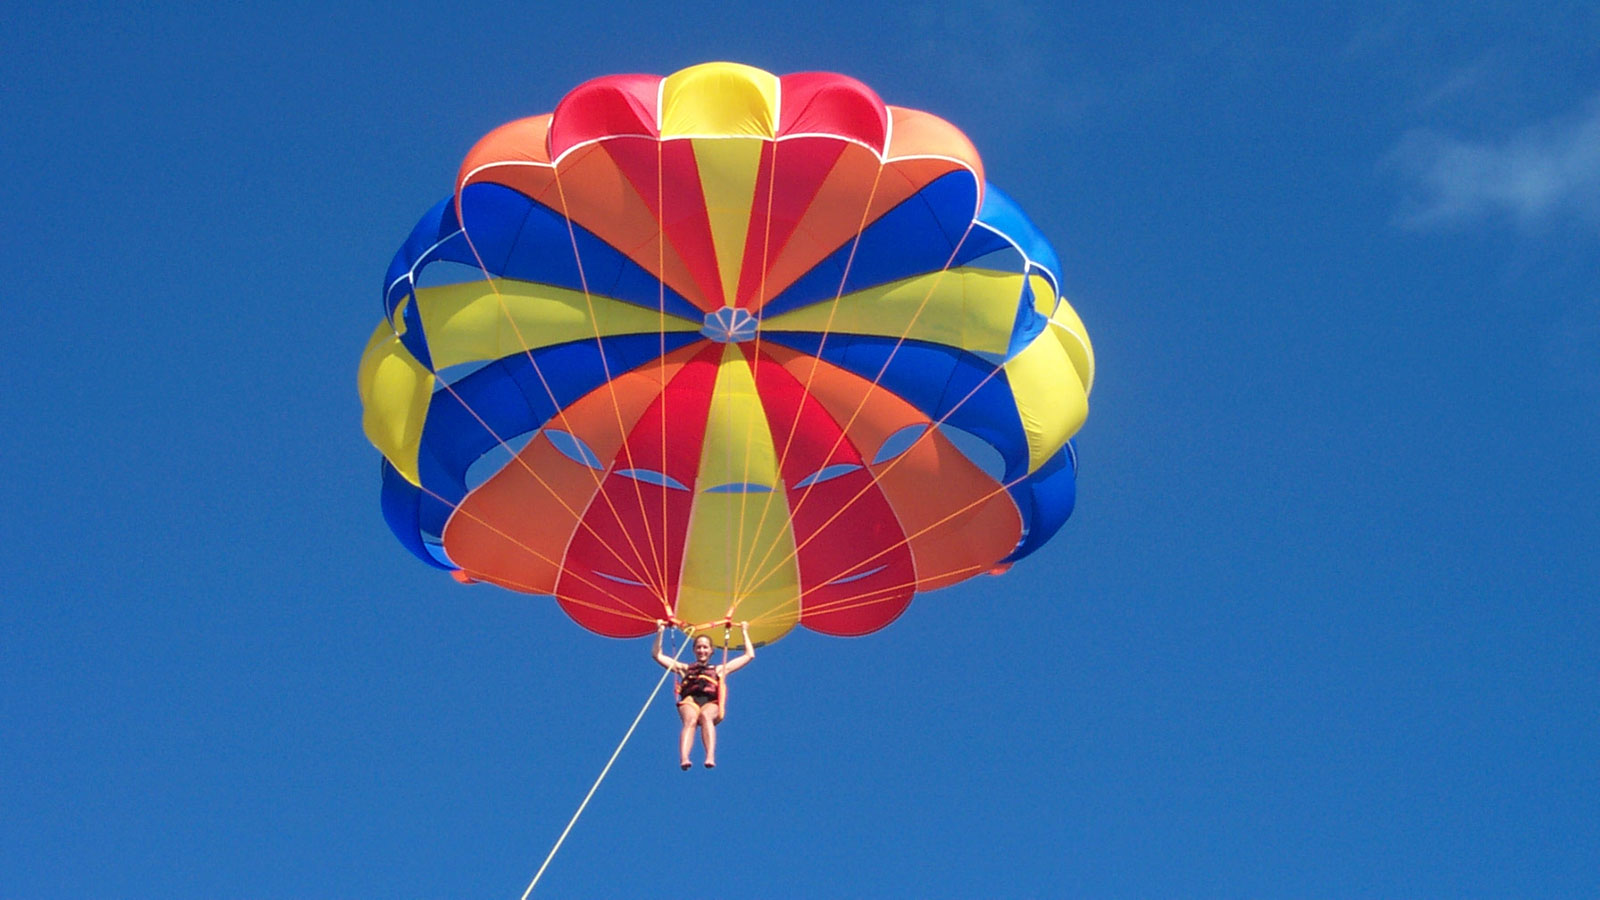 Maldives Watersports Parasailing